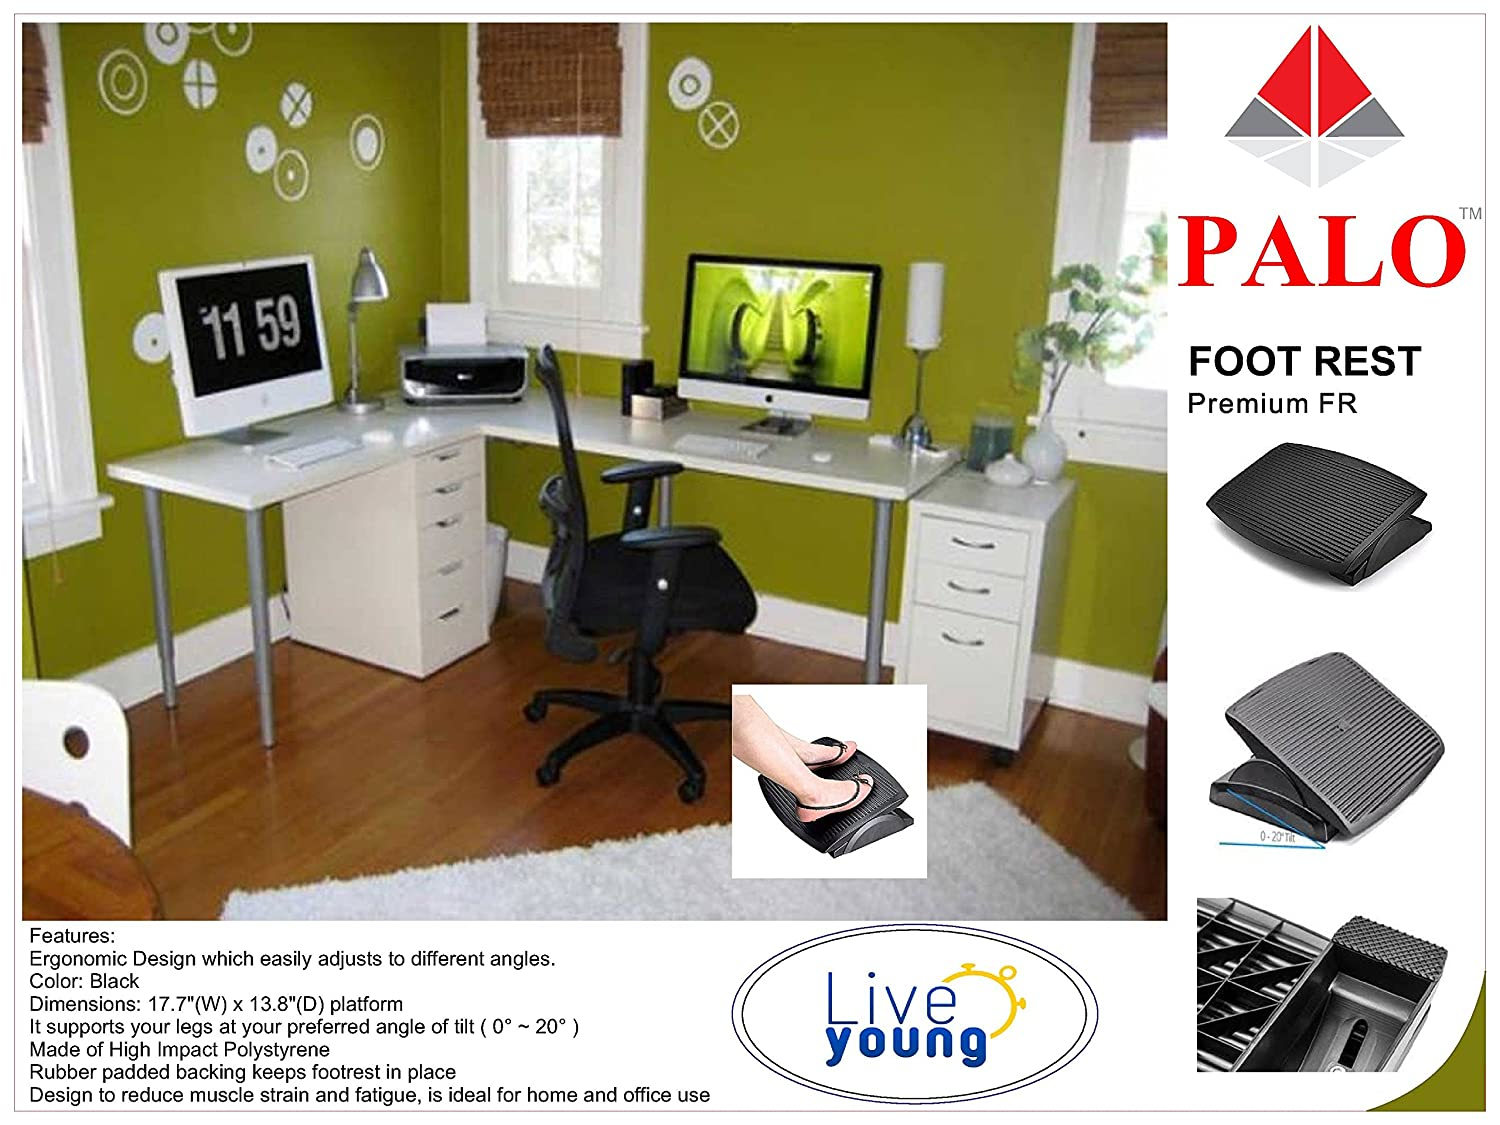 decorative for footstool office depot ideas desk foot under dimensions footrest in rest x